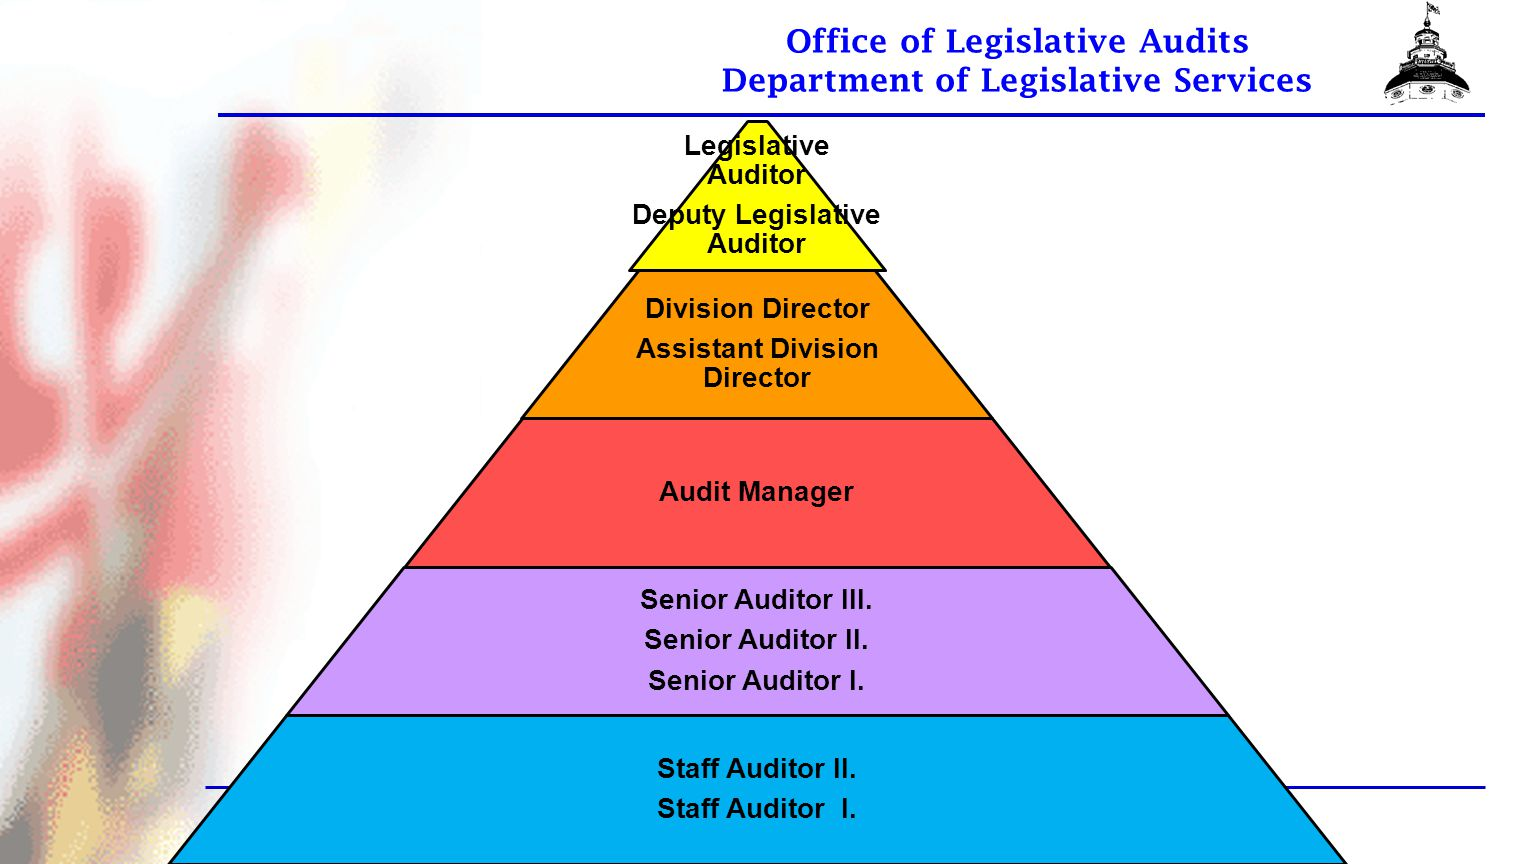 Office of Legislative Audits Department of Legislative Services OLA Audits - Maryland State Lottery